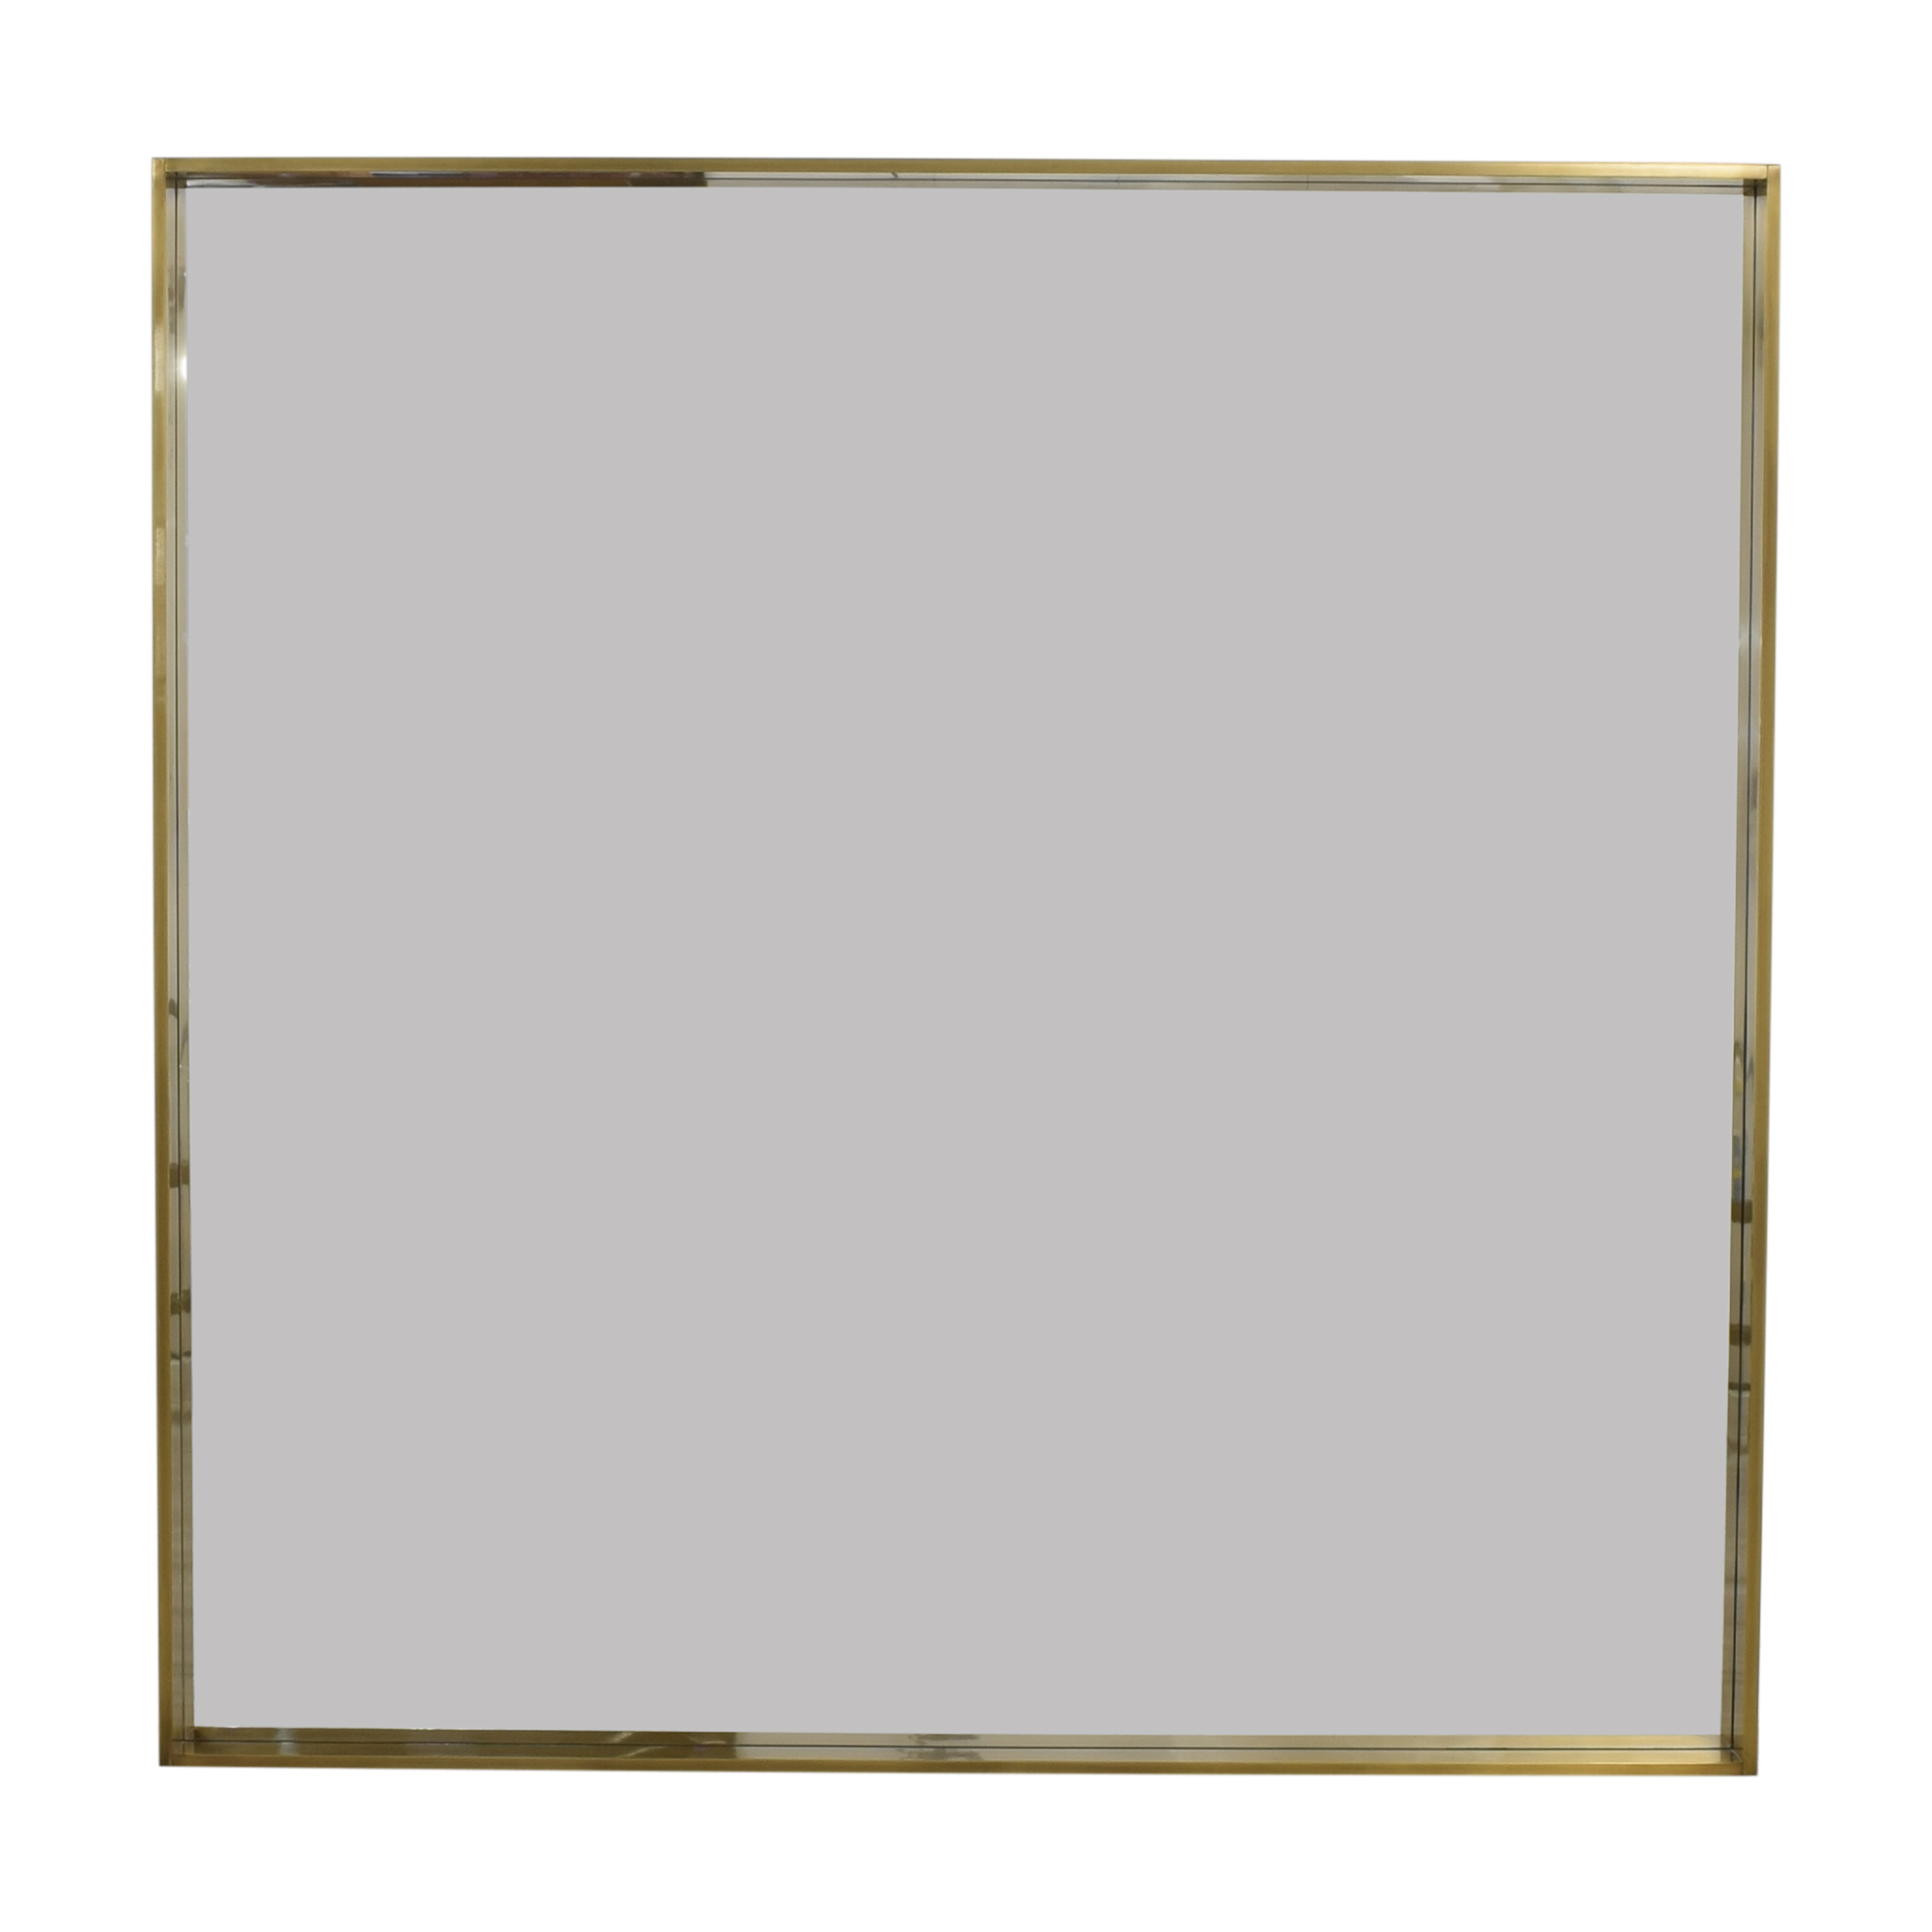 buy Restoration Hardware Restoration Hardware Metal Floating Mirror online